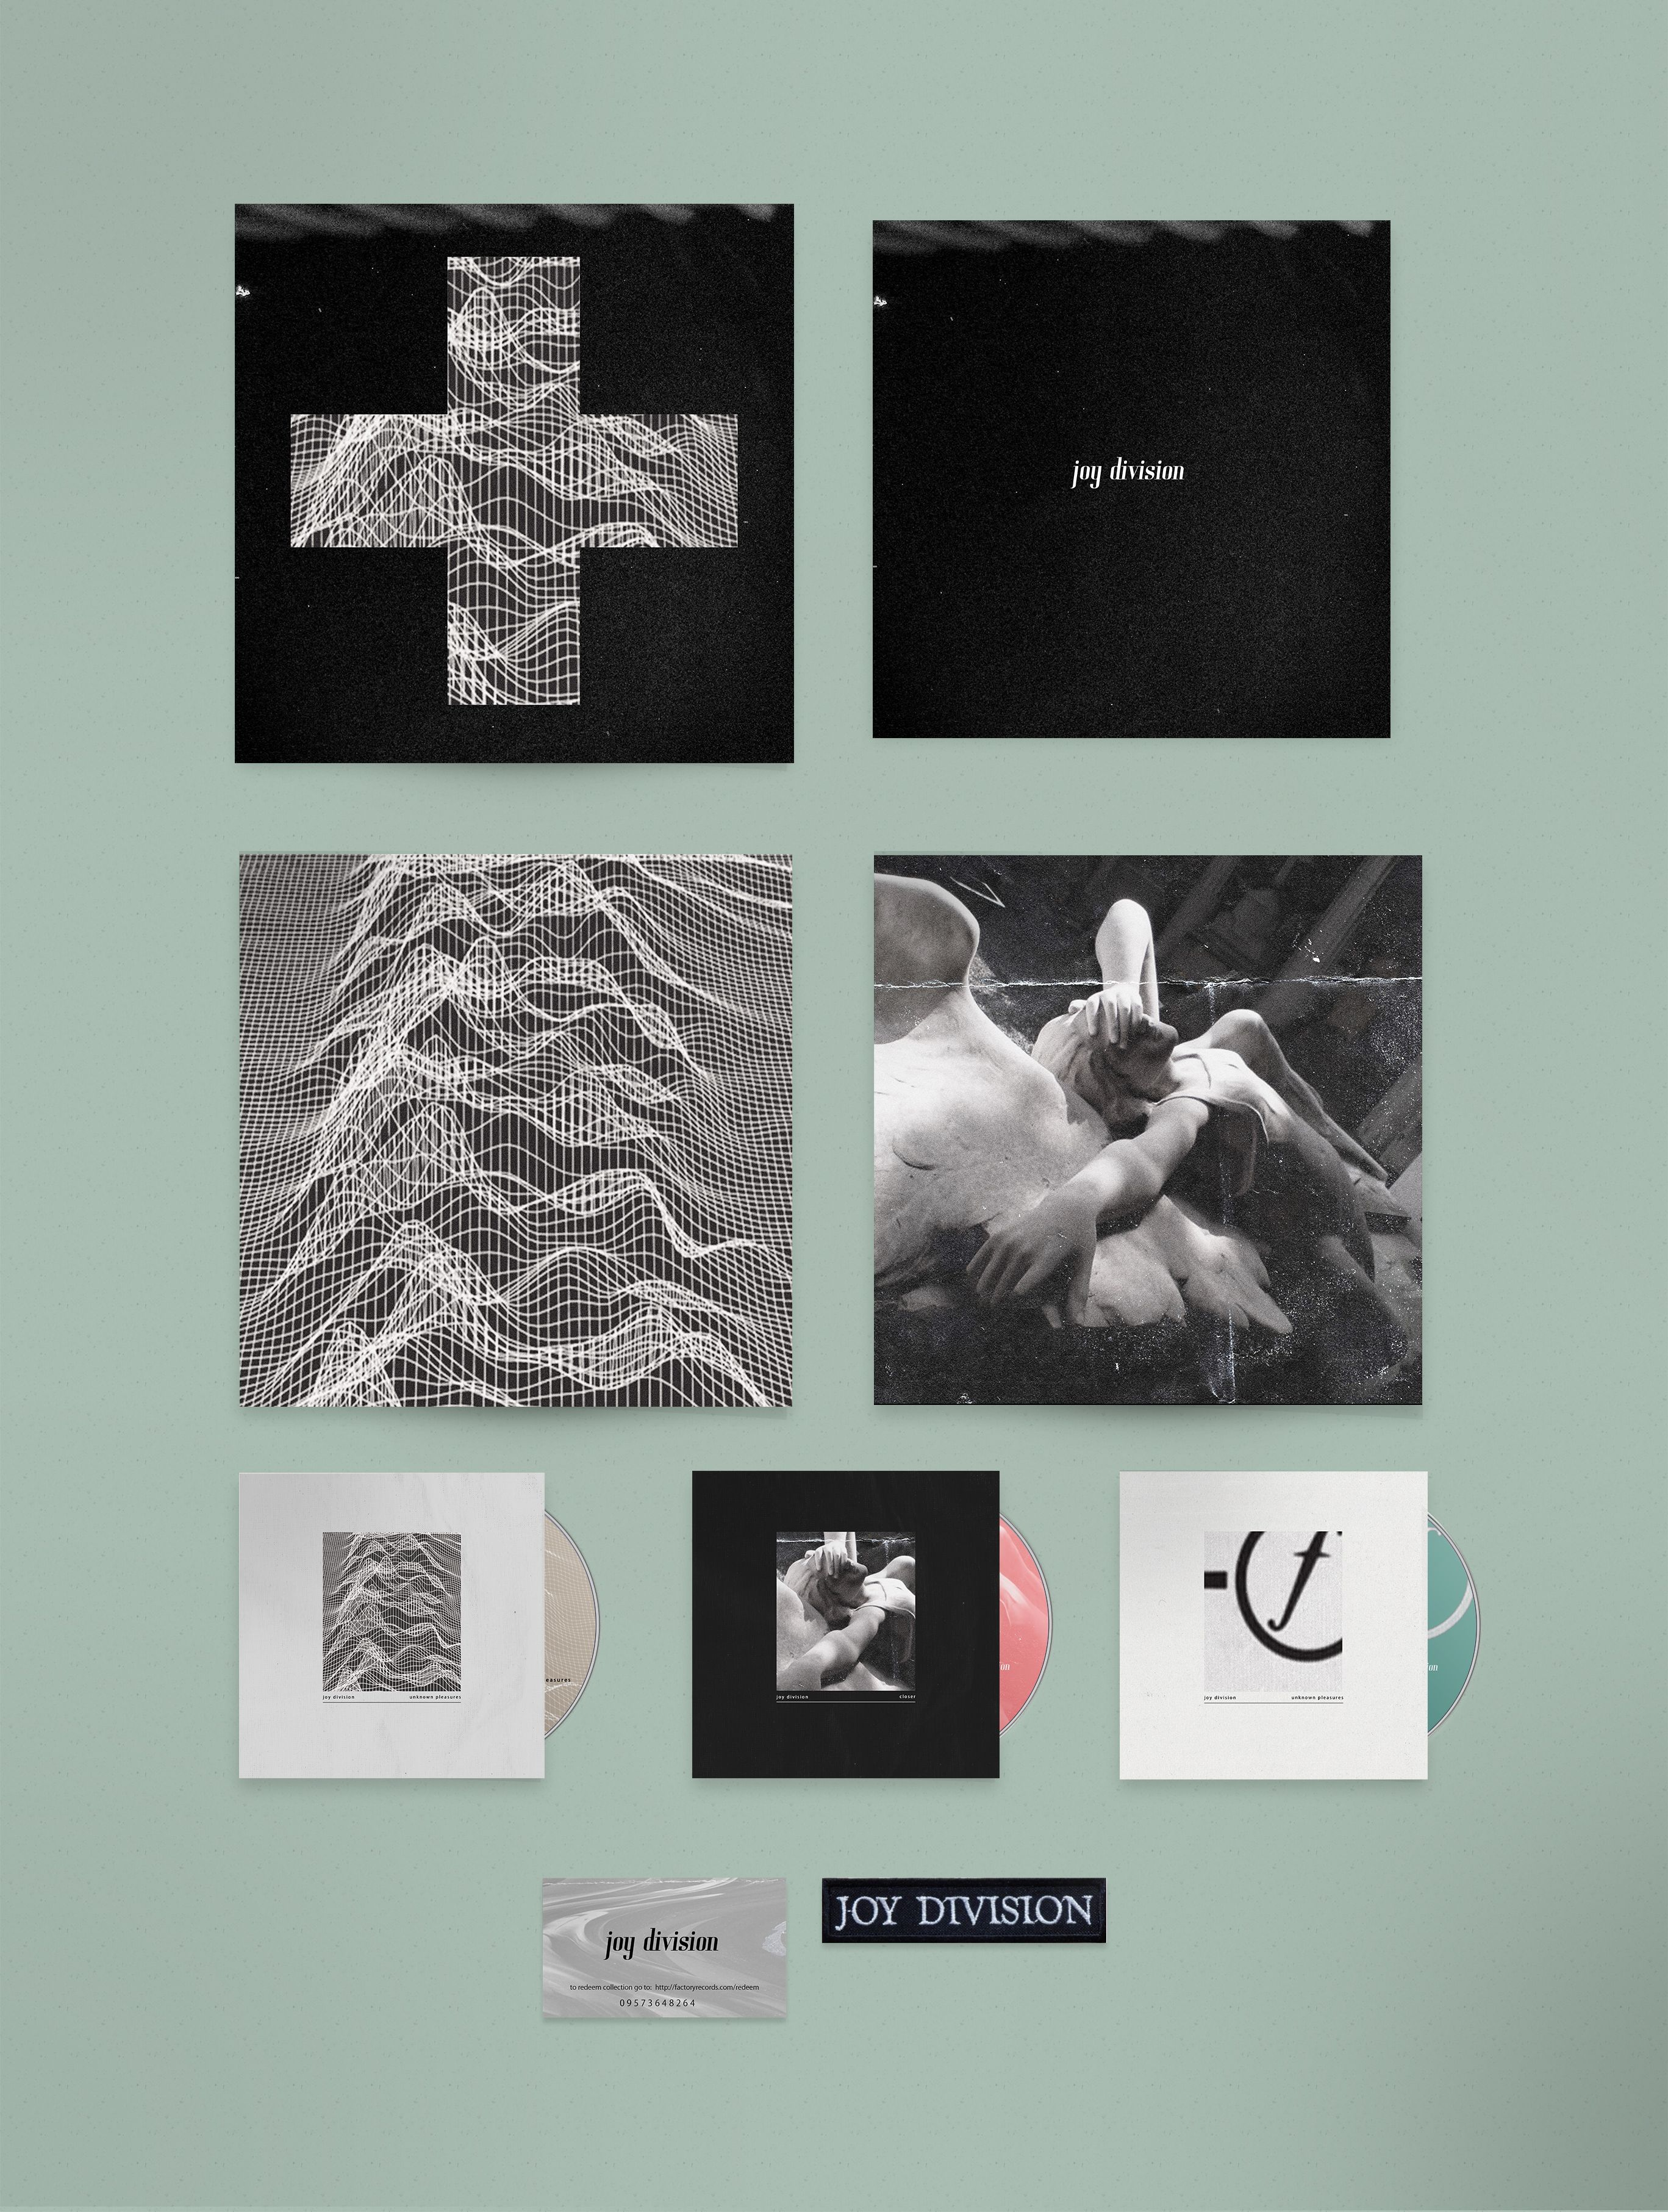 Made for a school project requiring a box set of a retired band or musician.The + - Collection is a reboot of the 2007 Joy Division box set. It's a more valuable, cohesive collection commemorating Joy Division and their music. + - is a collectable item…